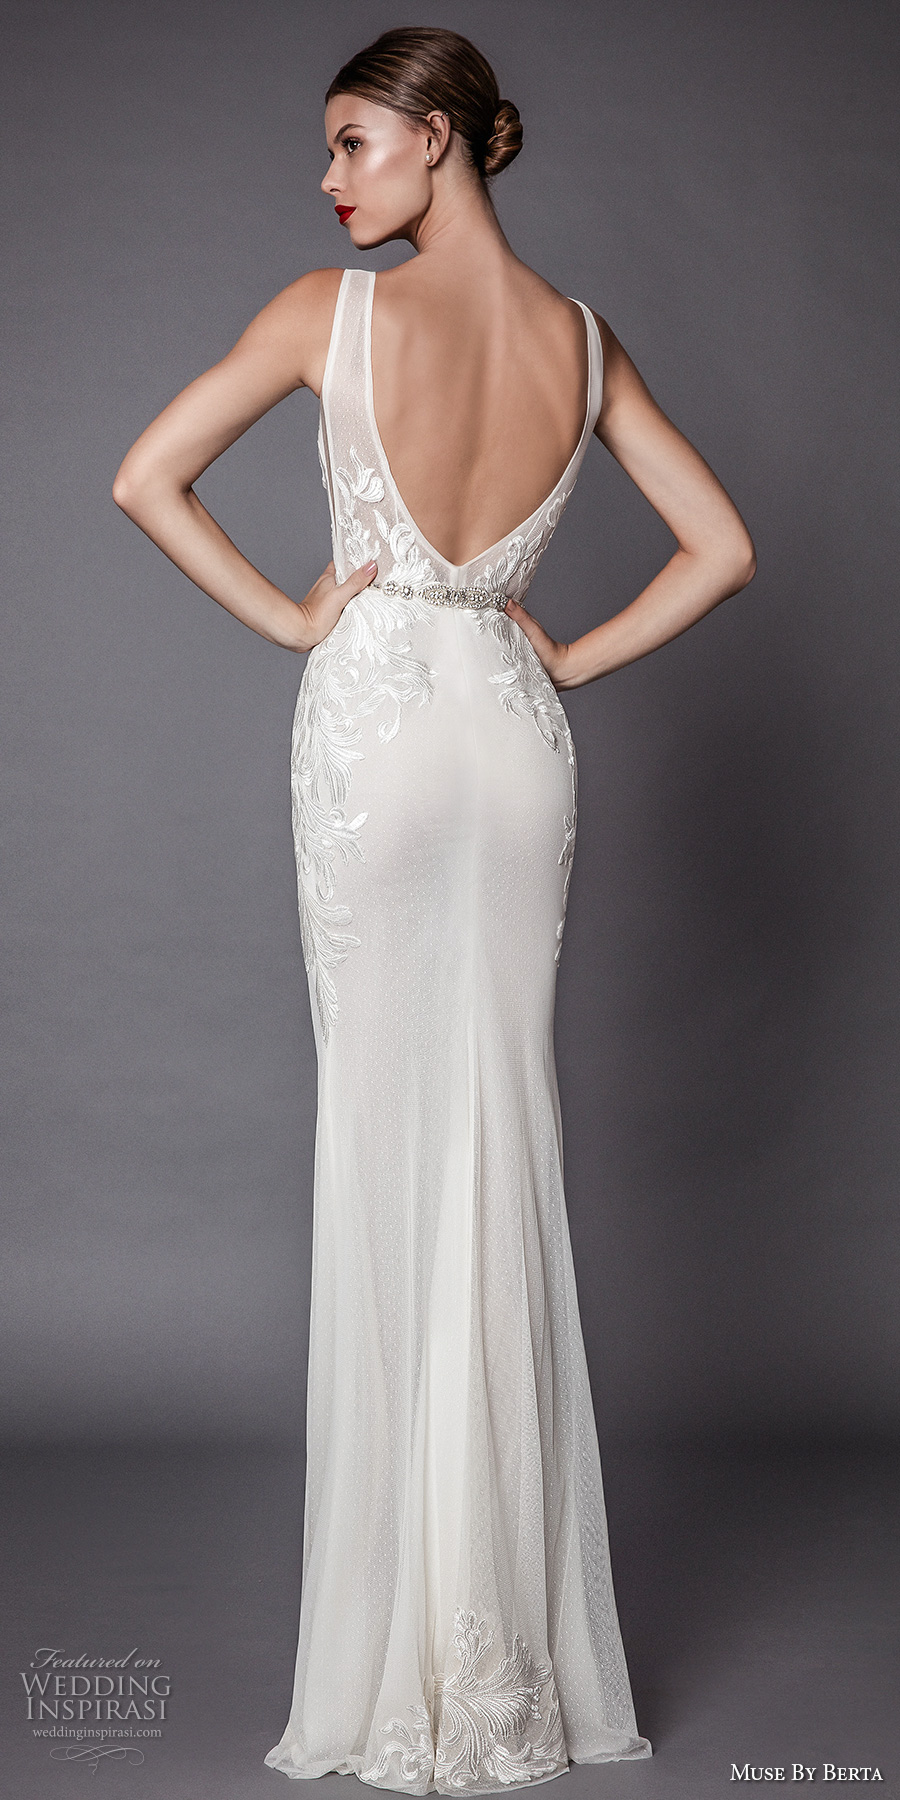 muse berta fall 2017 bridal sleeveless deep v neck heavily embellished bodice and trim elegant sexy sheath wedding dress open low back sweep train (amadis) bv